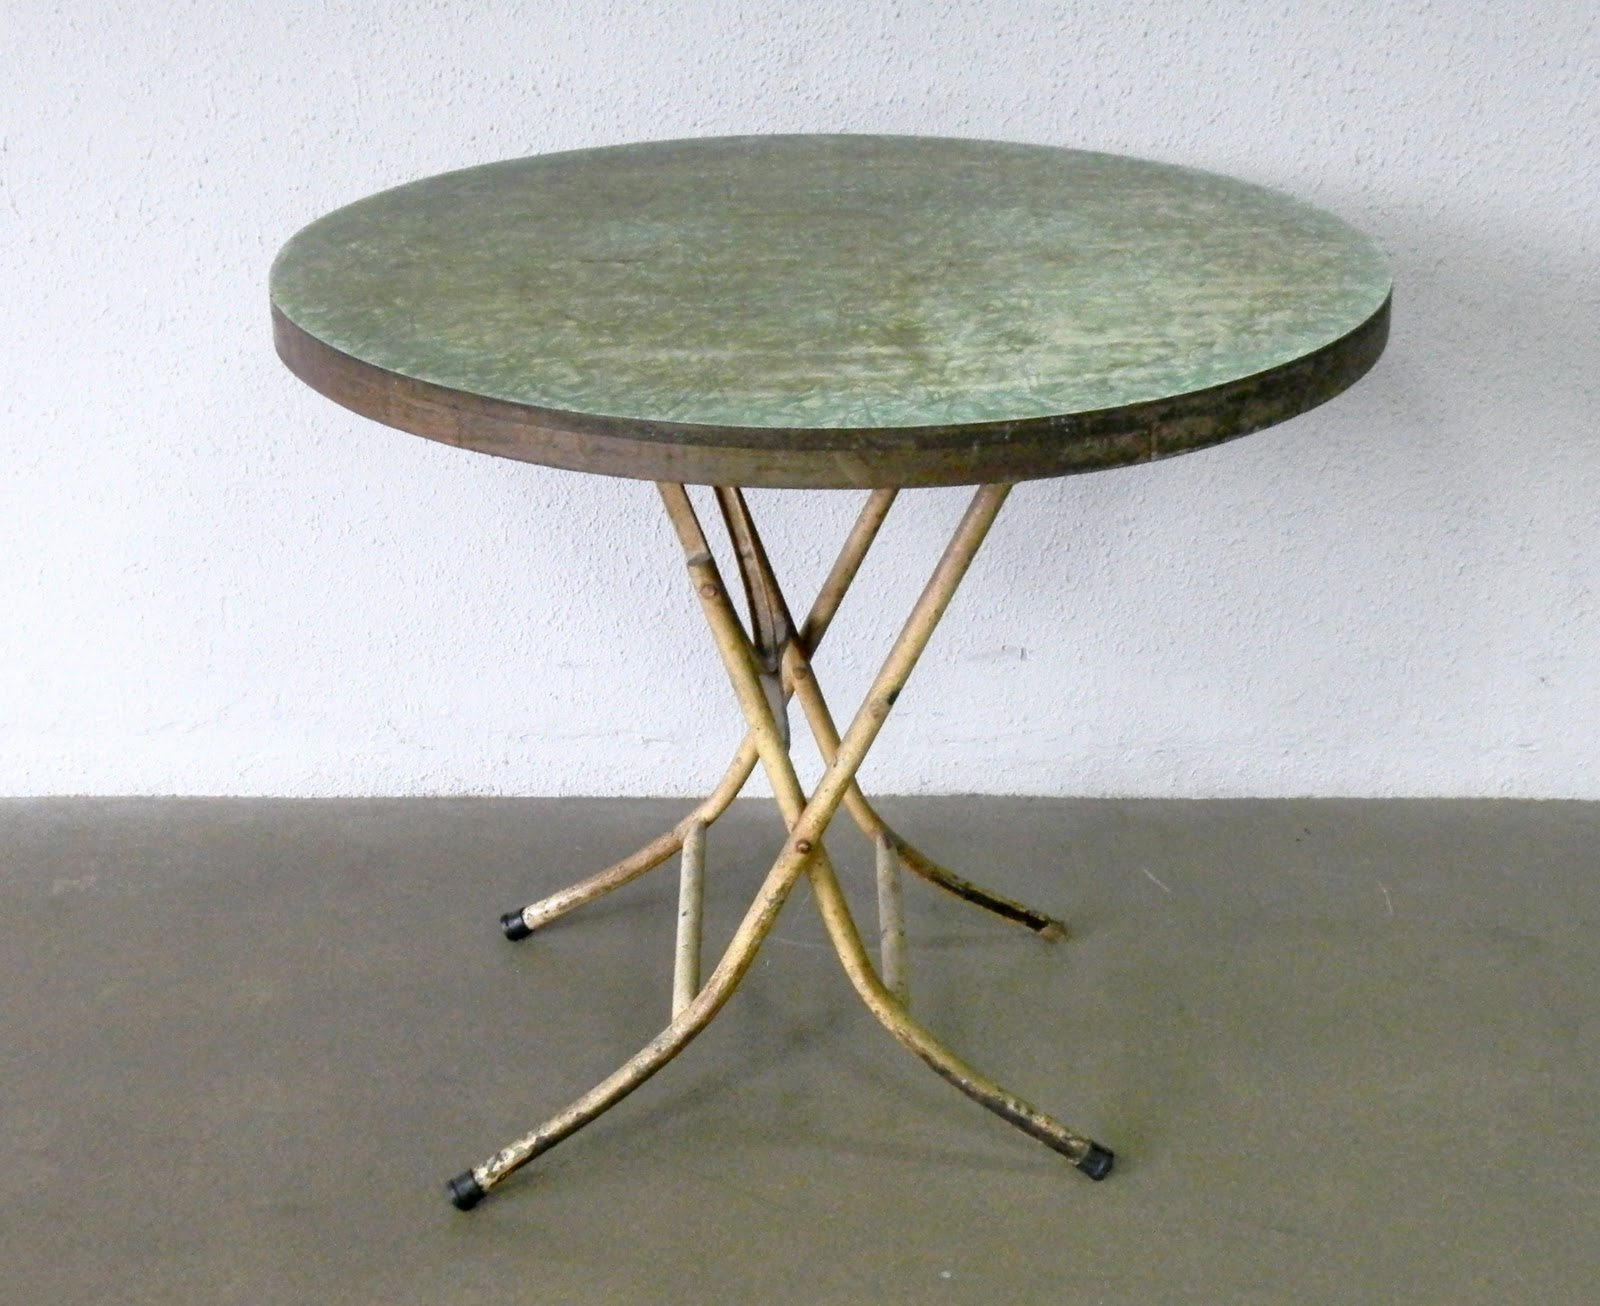 Round Formica Table Vintage Furniture And The Power Of Memories Second Charm